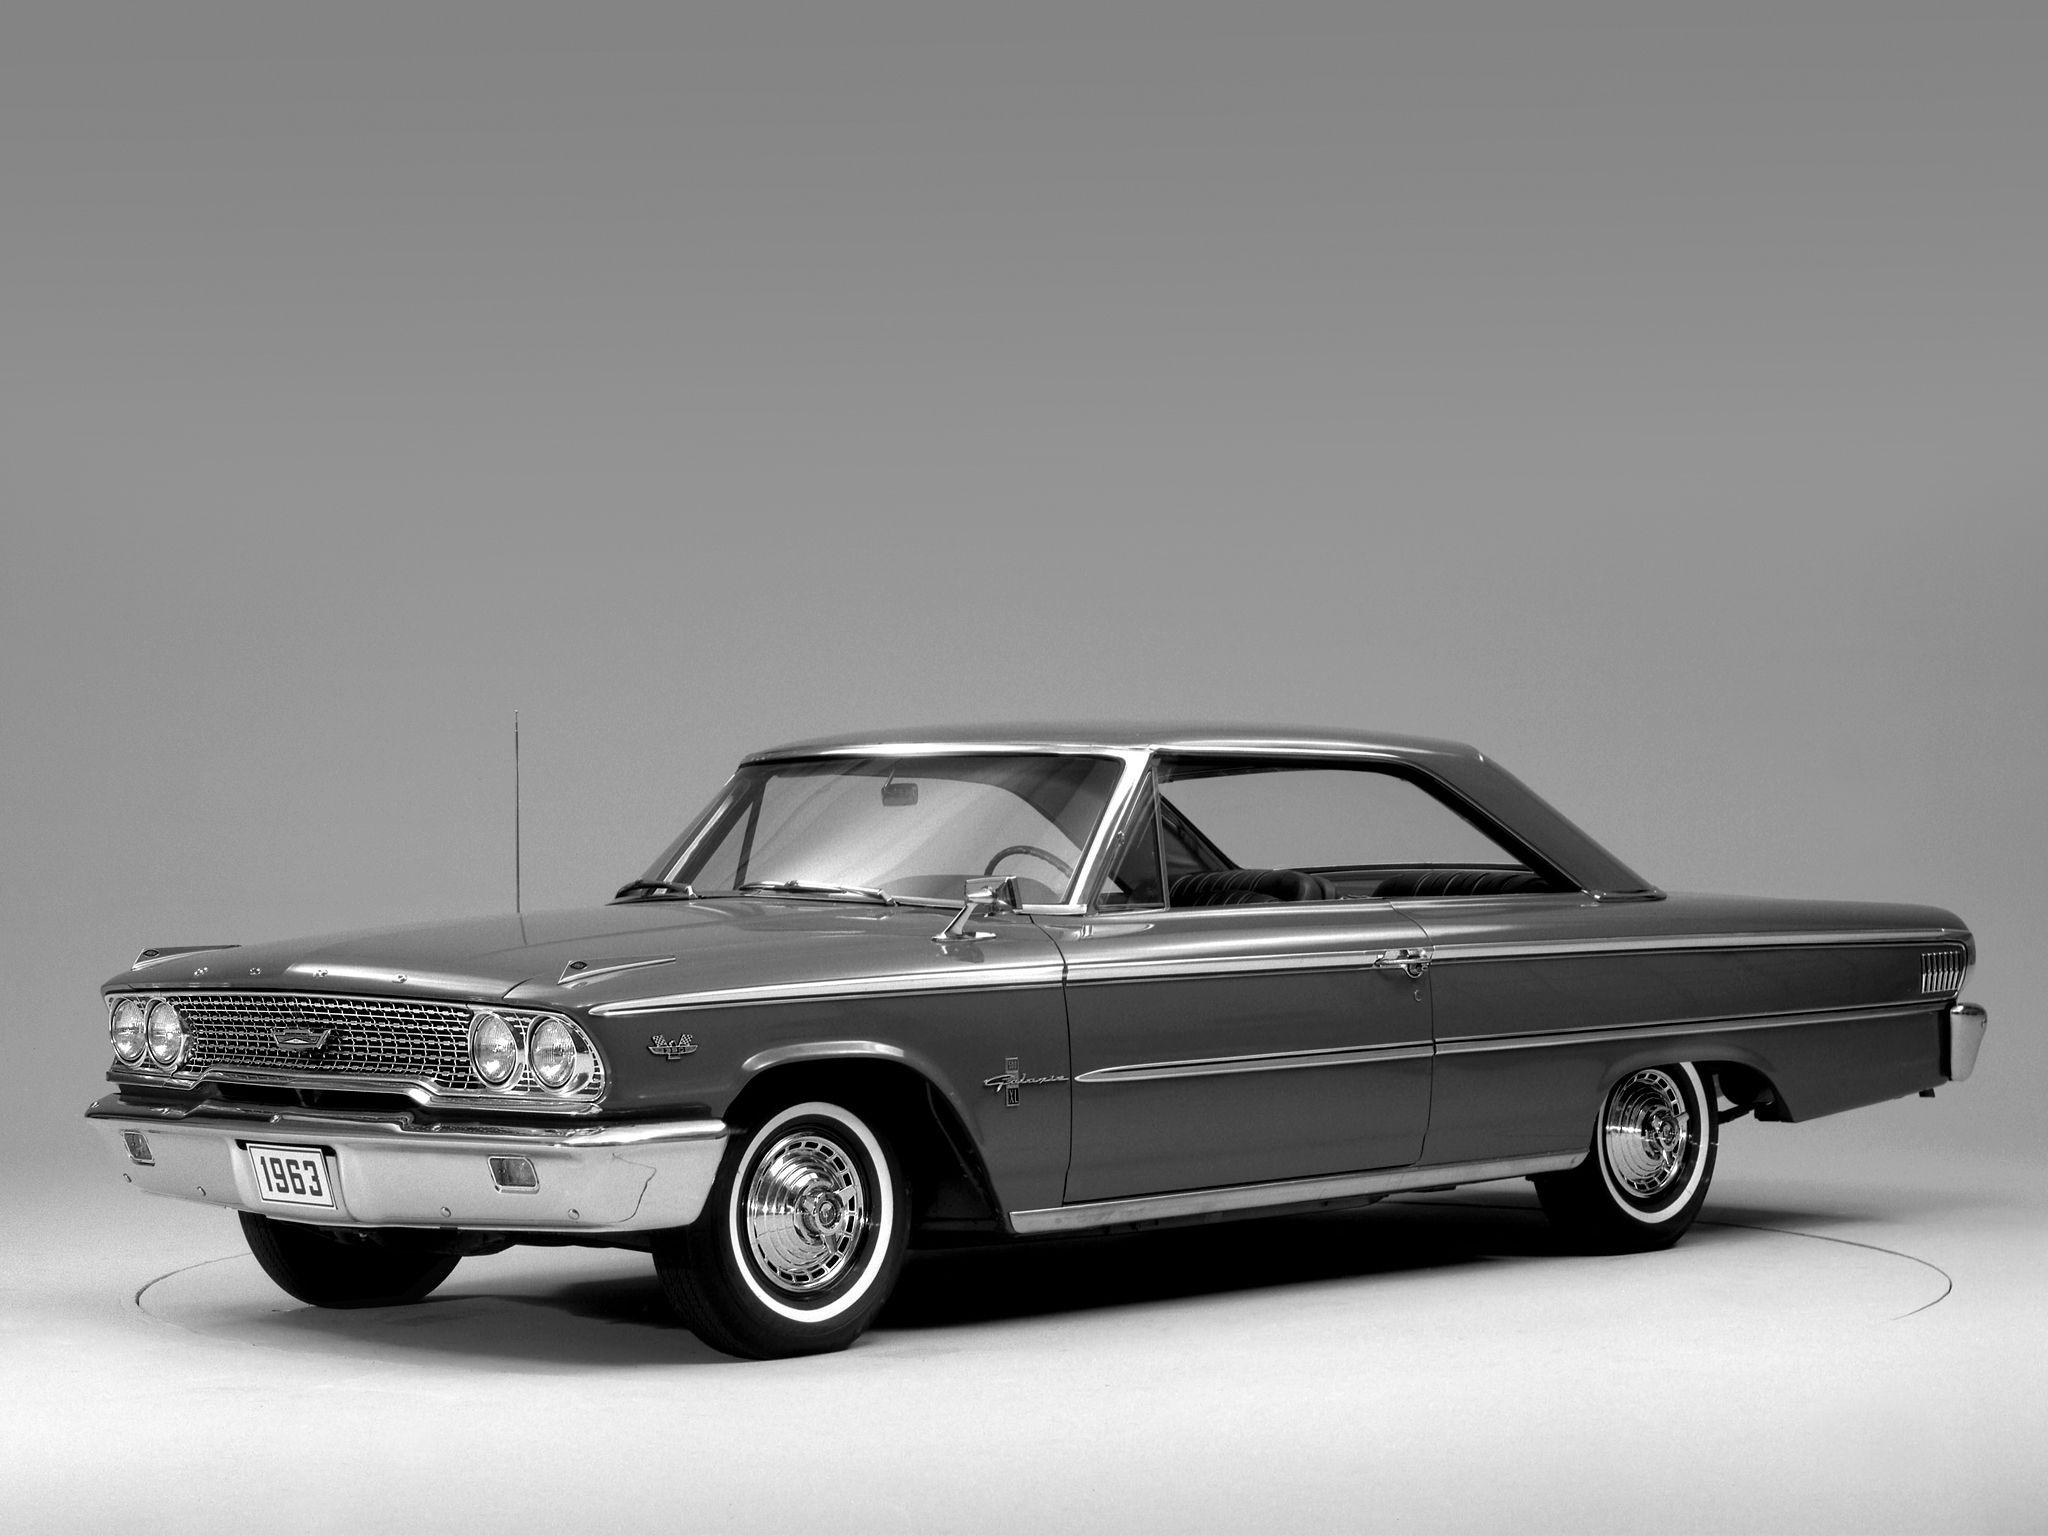 1963 Ford Galaxie 500 X-L Hardtop Coupe classic wallpaper ...